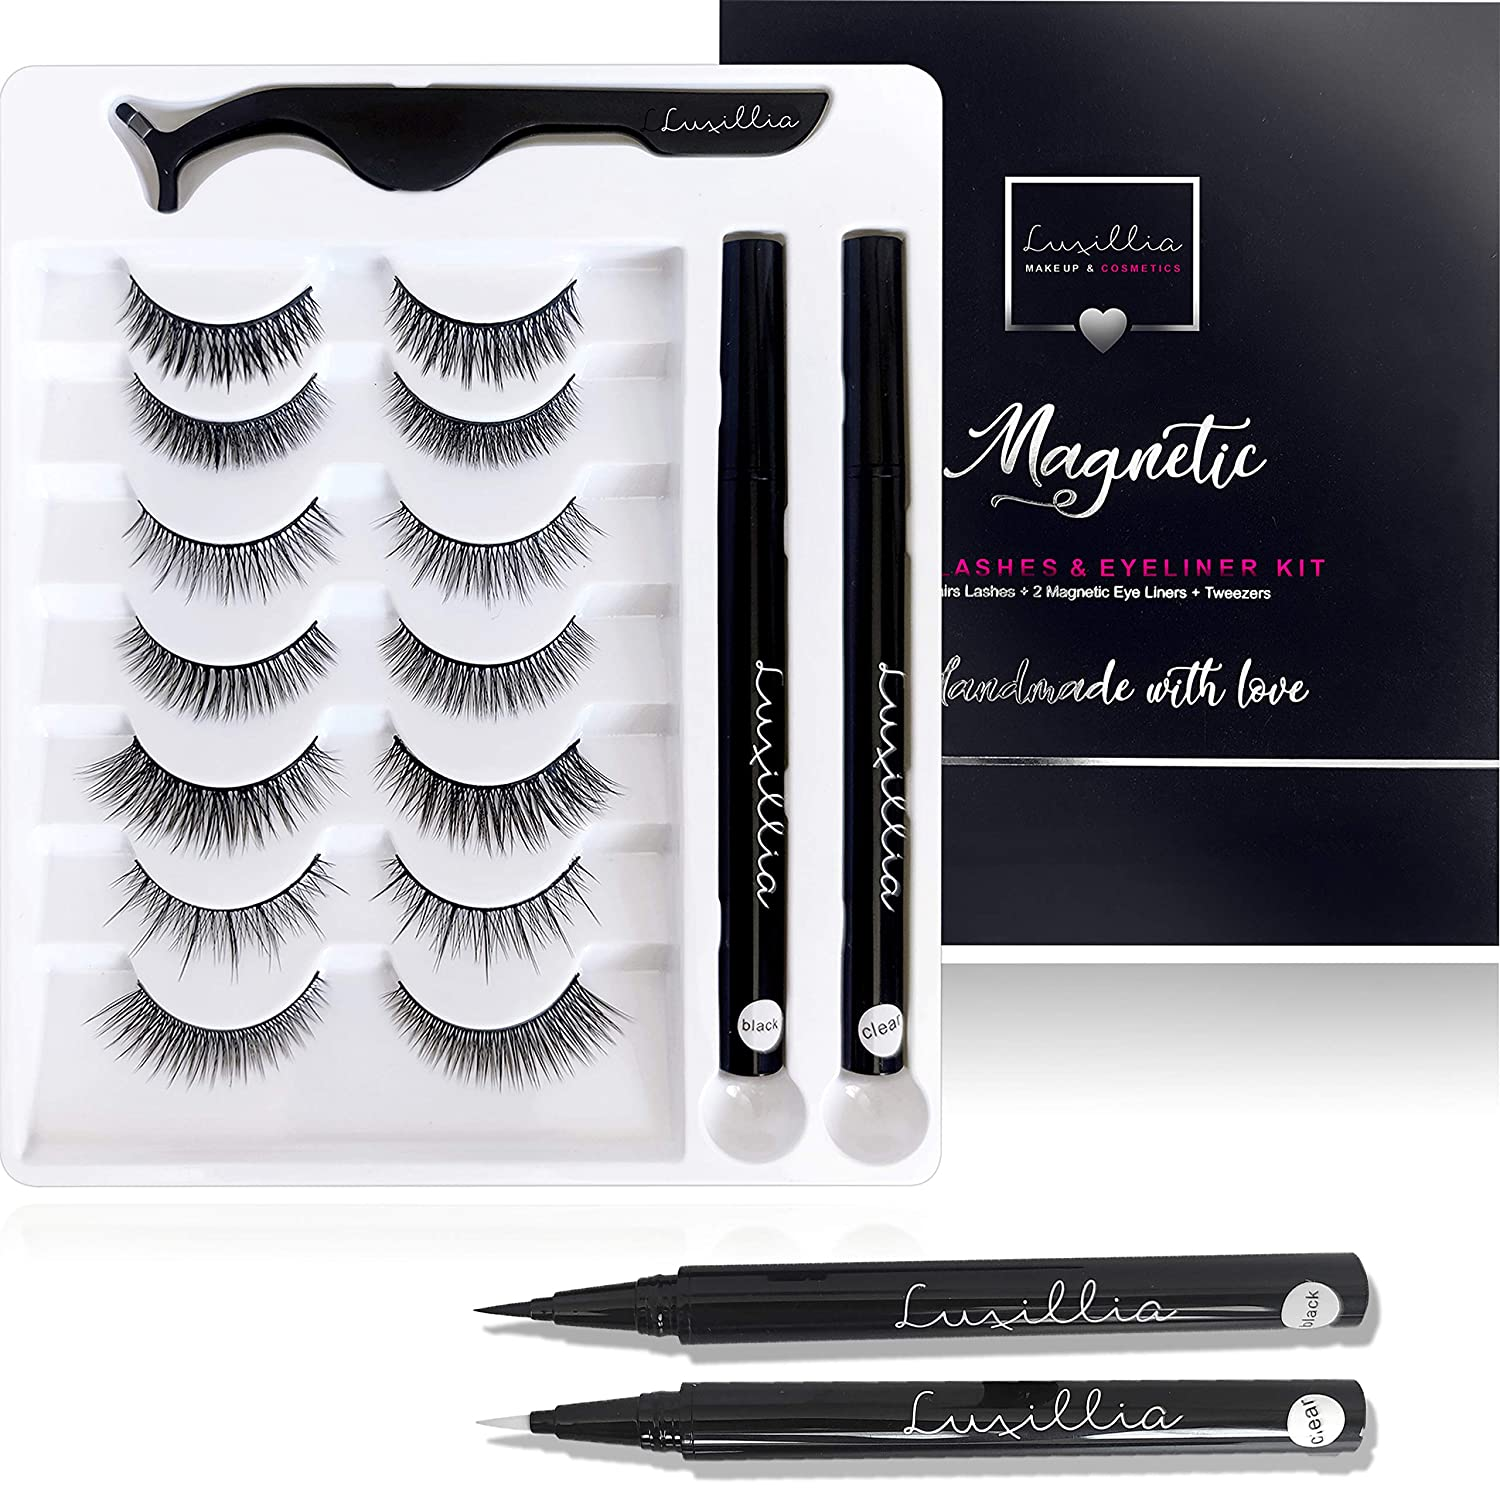 (7 Pairs with Clear and Black Liners) Luxillia by Amazon Self Adhesive Eyeliner and Eyelashes Kit - 8D Natural Look Eyelash No Magnets Needed - Reusable Eye Lash with Waterproof Pen Liner, Free Applicator